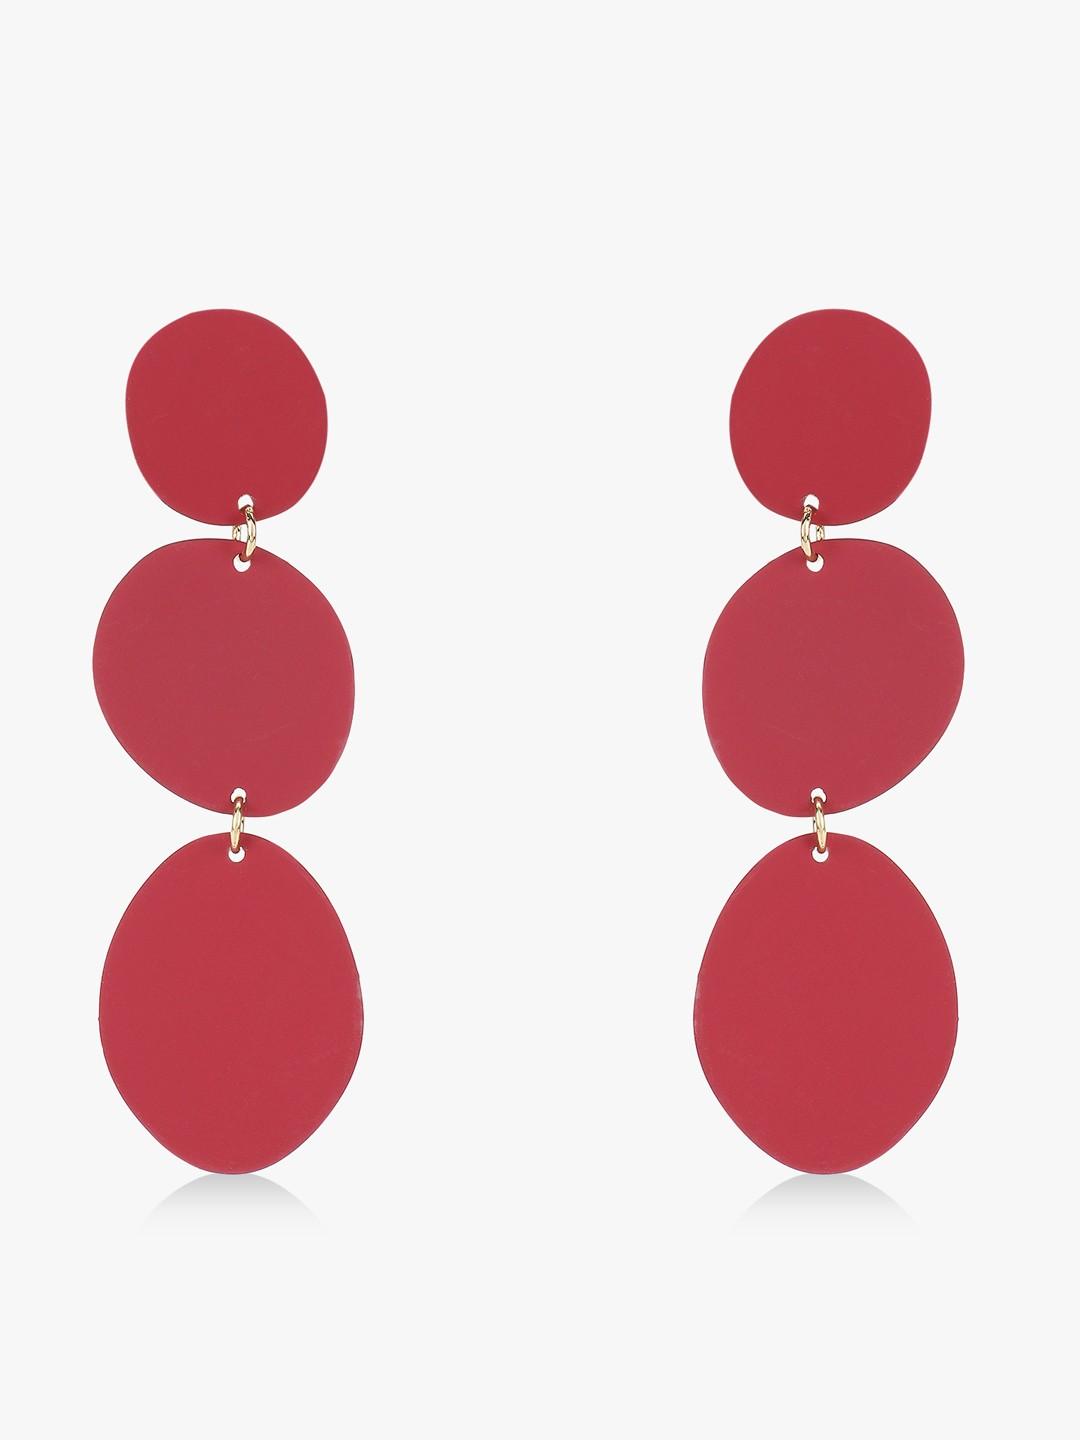 Style Fiesta Red Ascending Circle Earrings 1